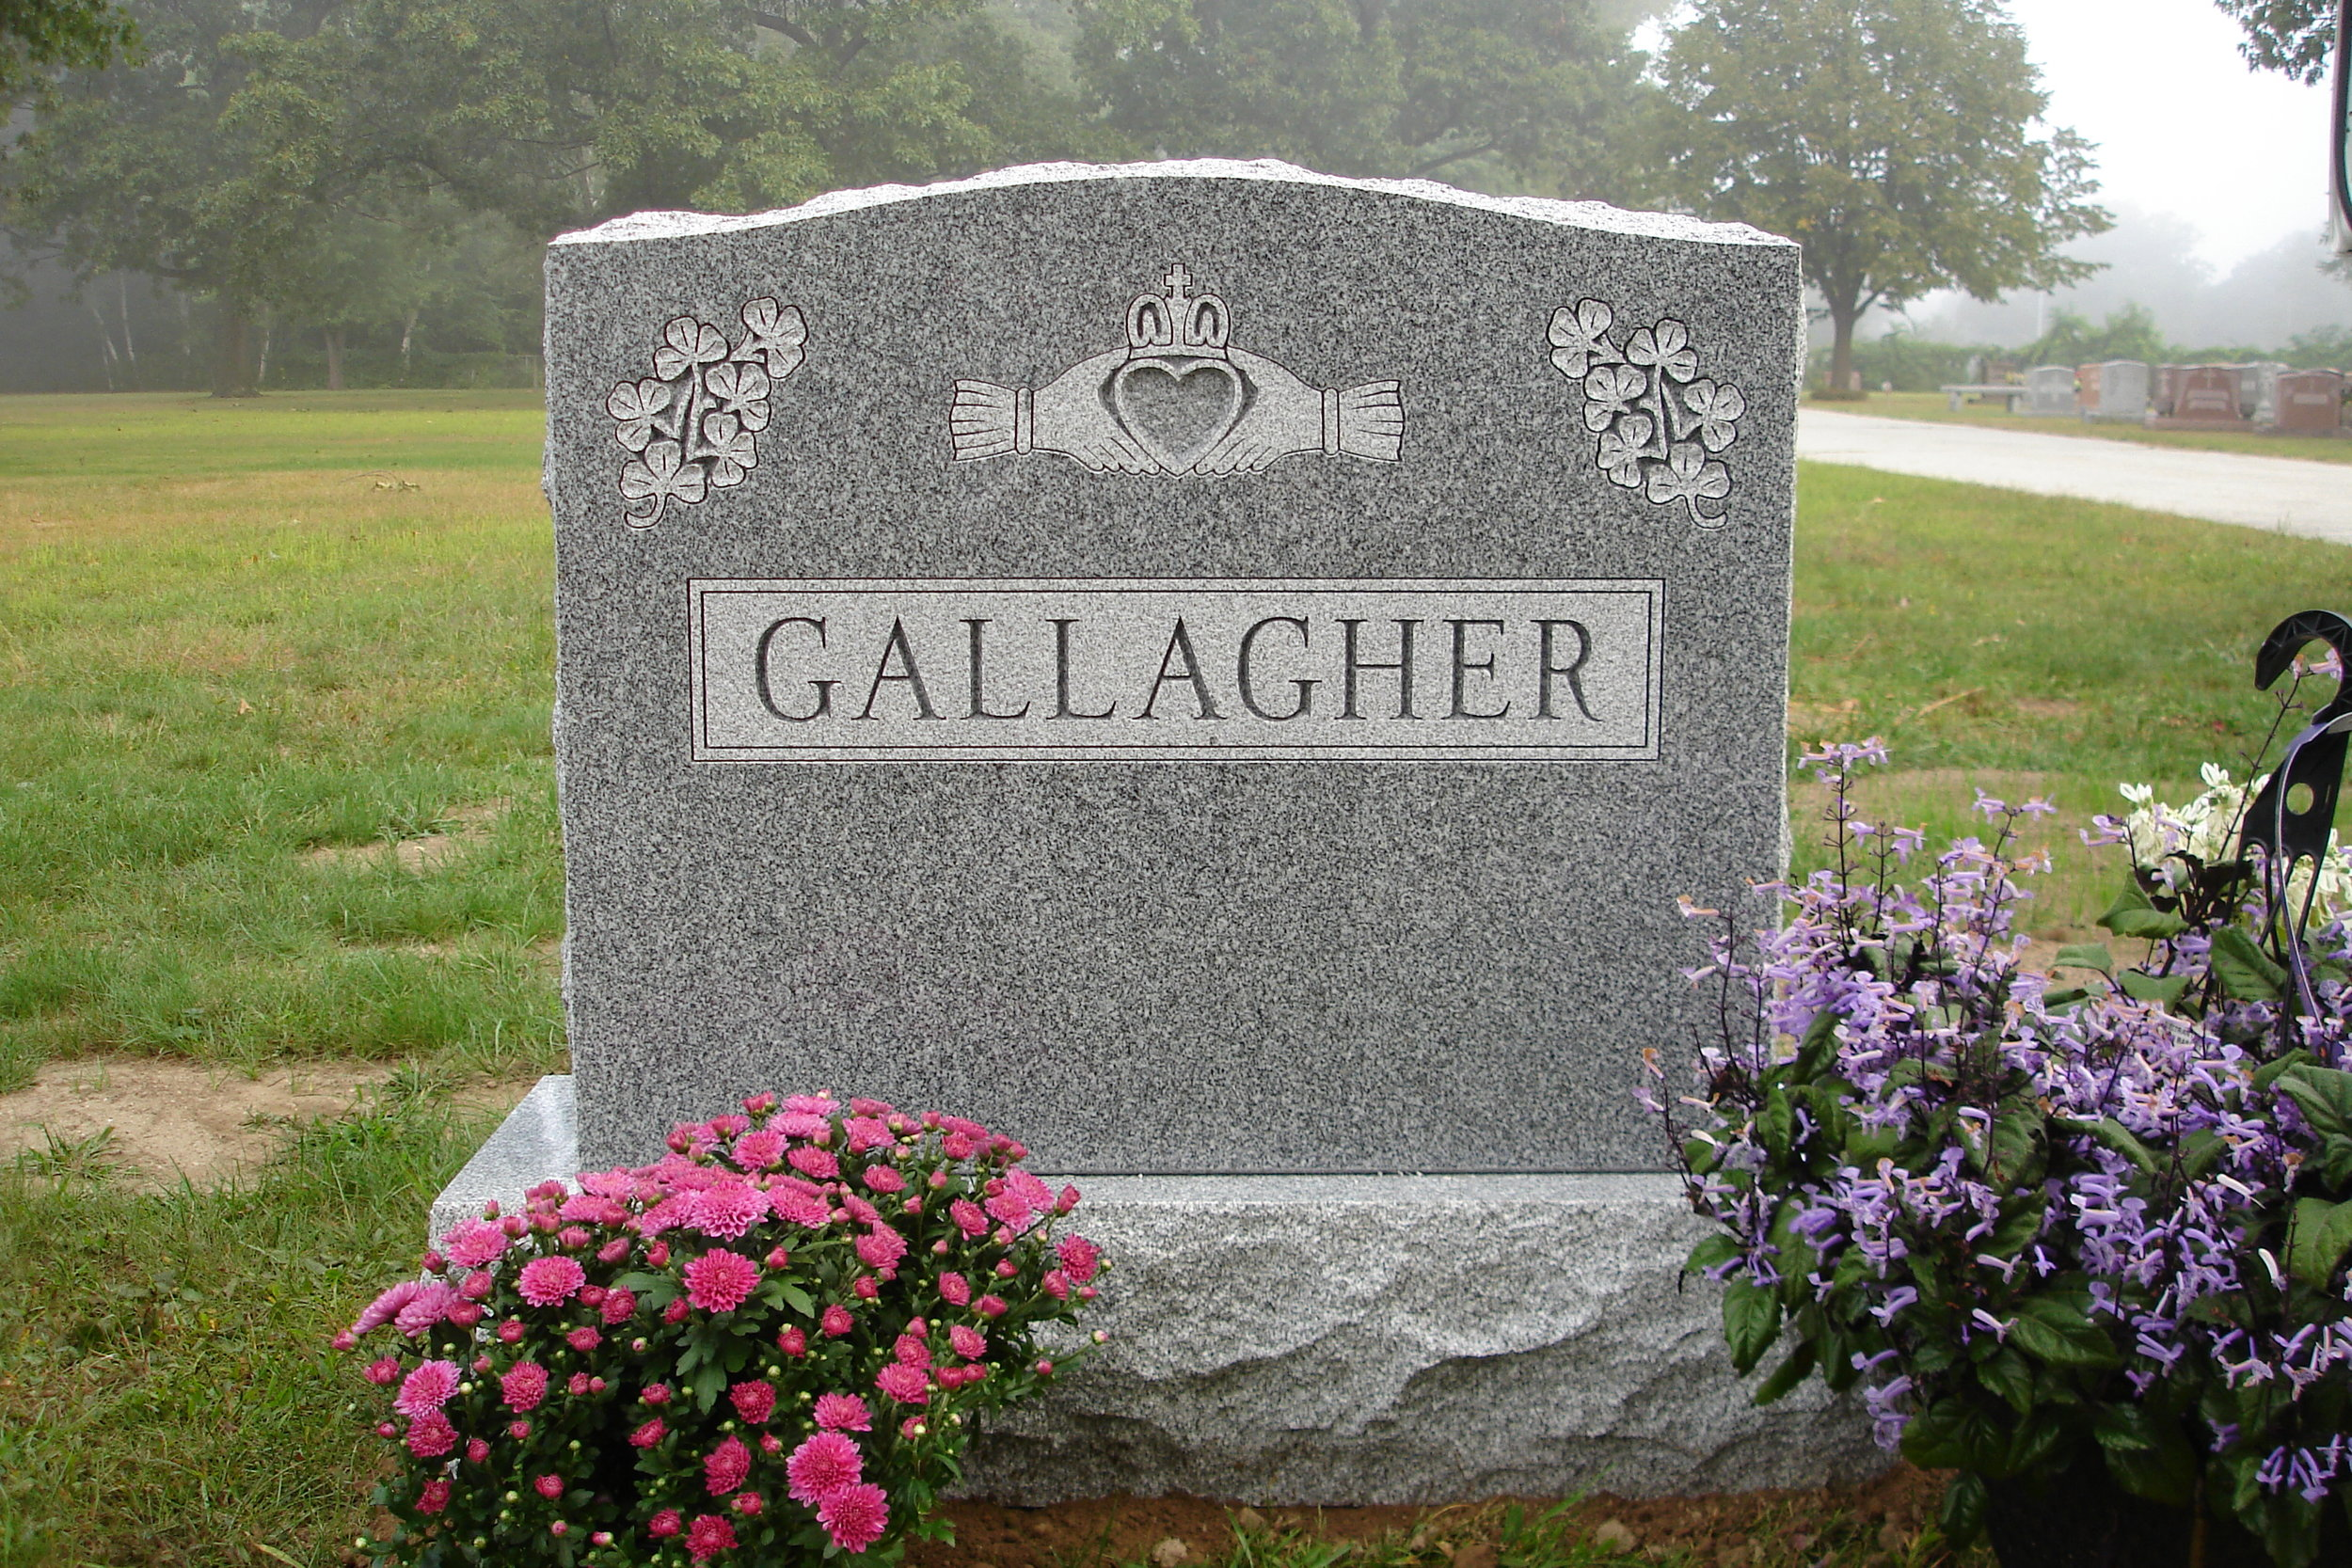 Gallagher 001 .jpg.JPG